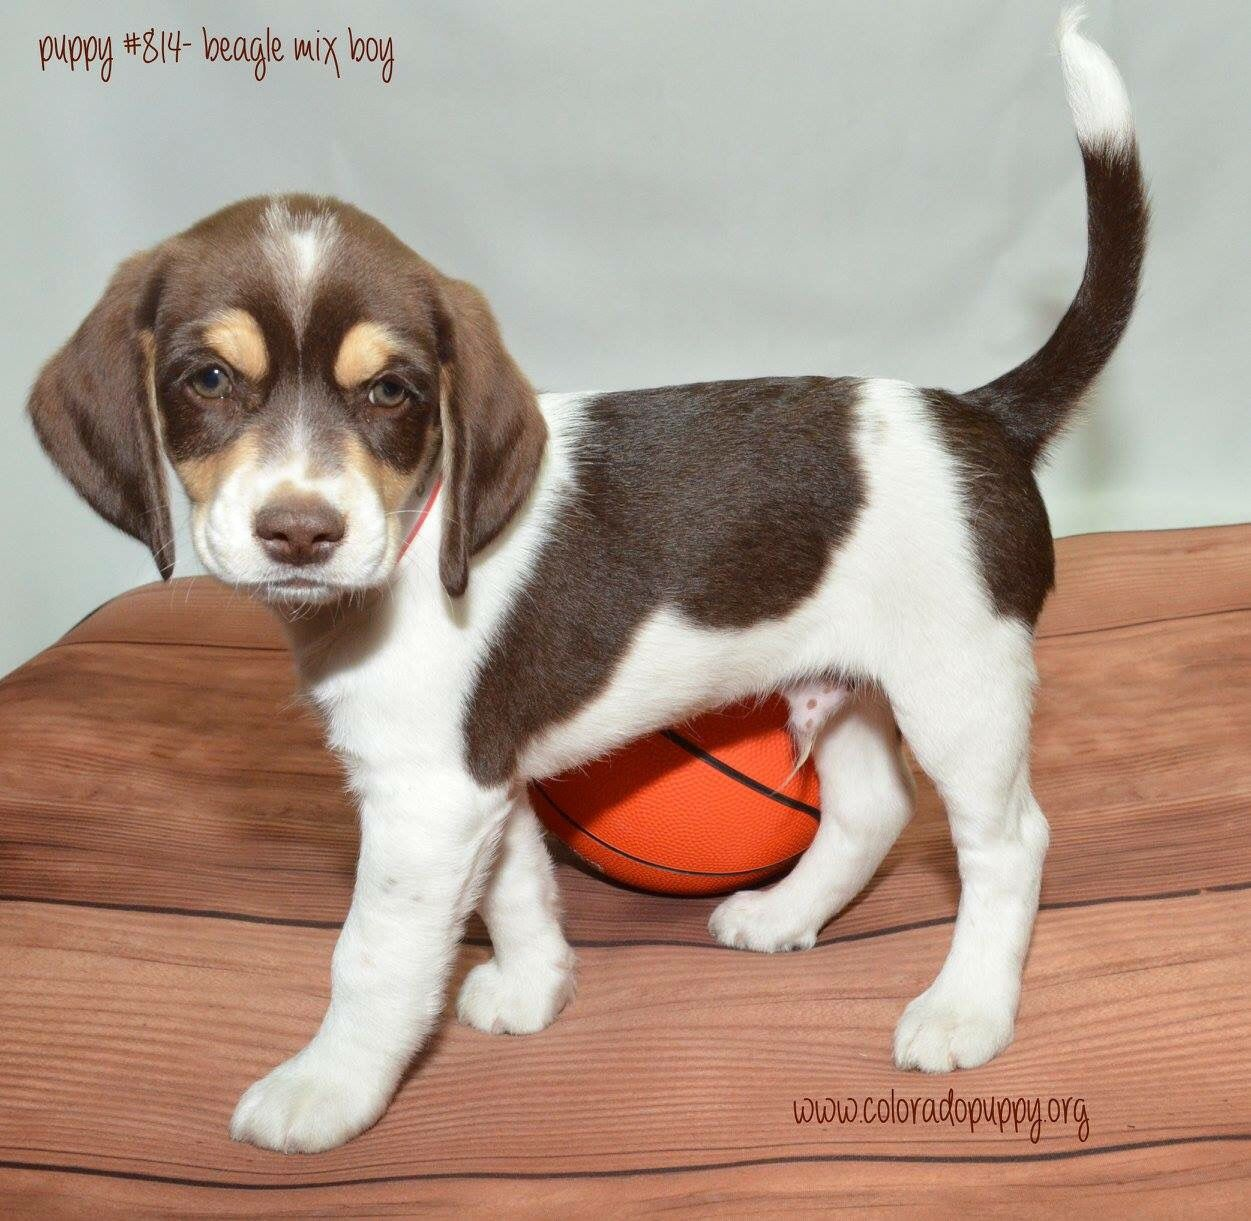 Beagle Mix Puppy Available For Adoption At Colorado Puppy Rescue